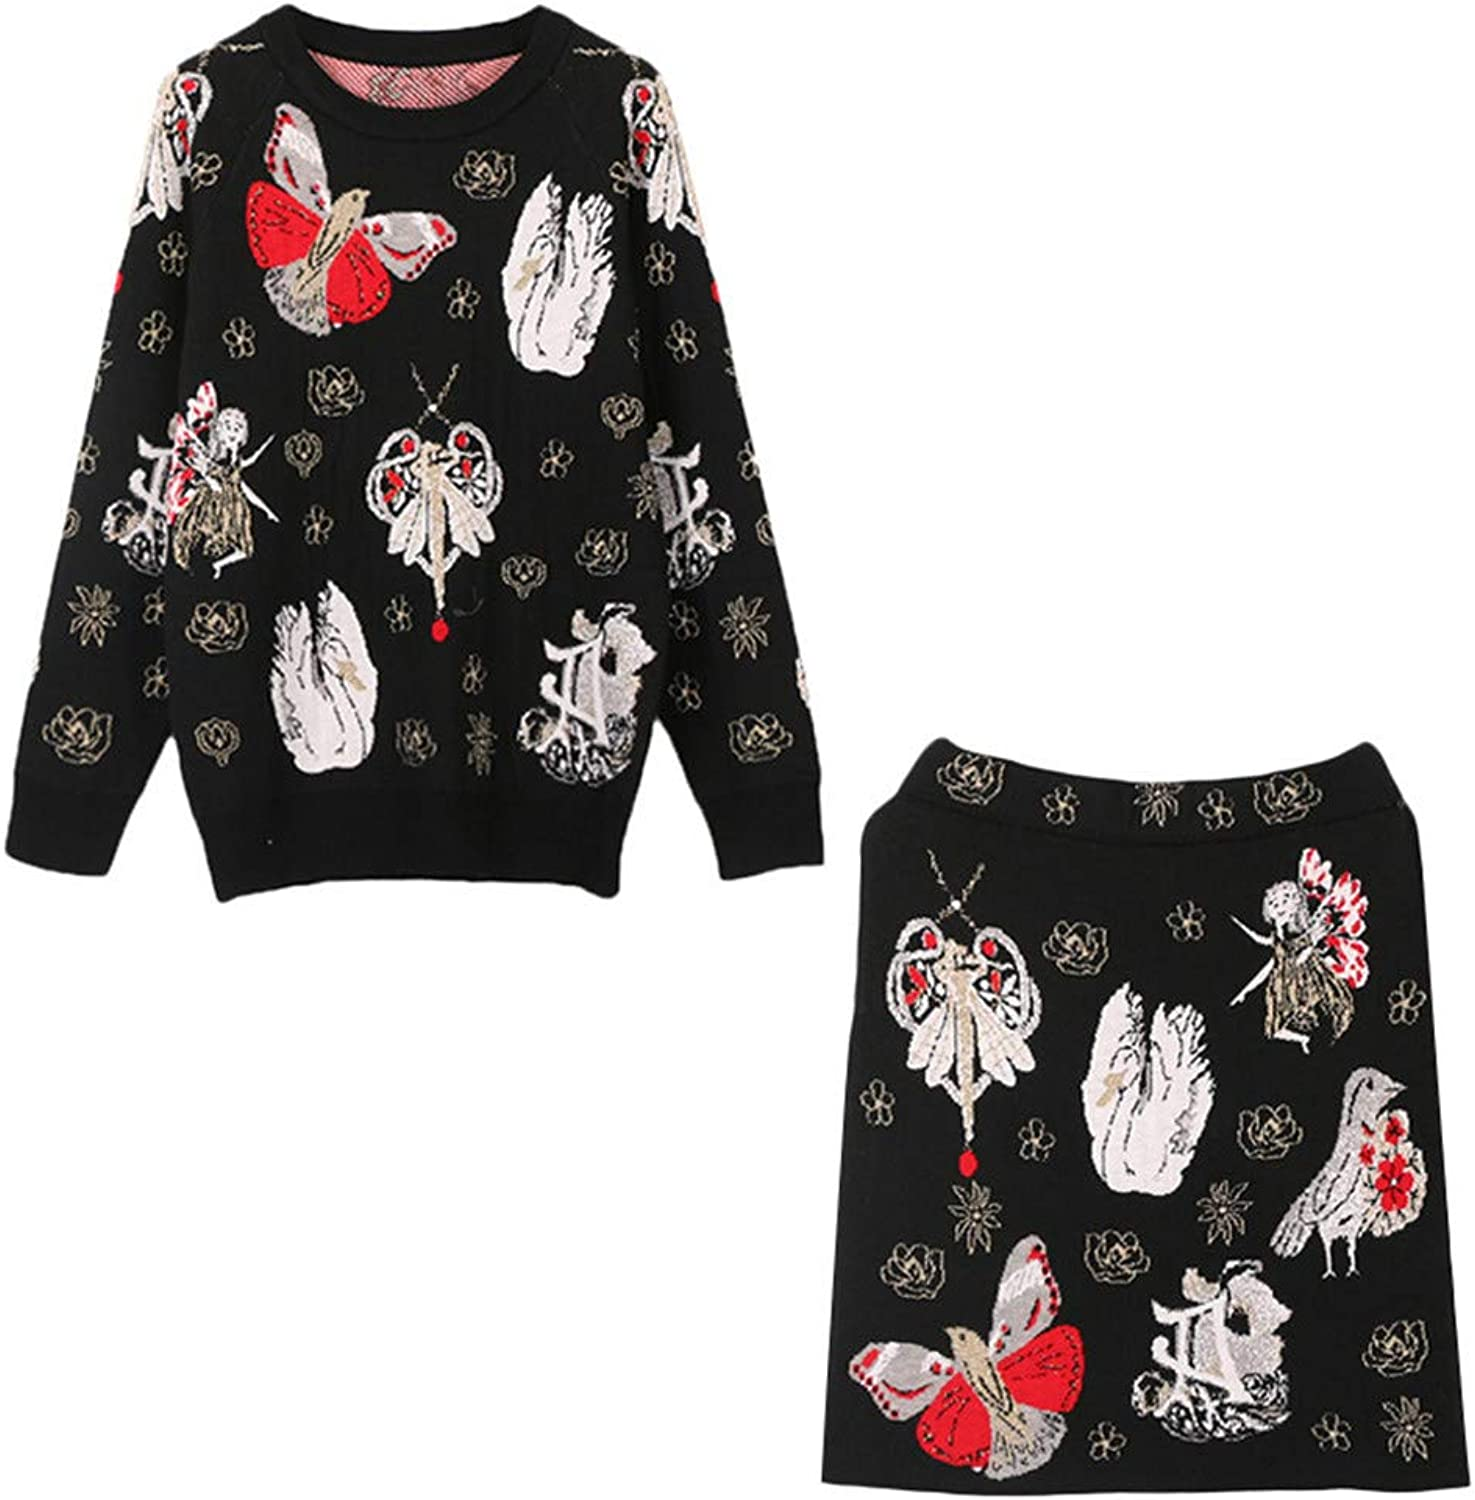 Exquisite Printed Knitting Top Hip Skirt TwoPiece Clothing Set Spring Autumn Long Sleeves Soft Party Suit Home Casual Outfit (Size   M)